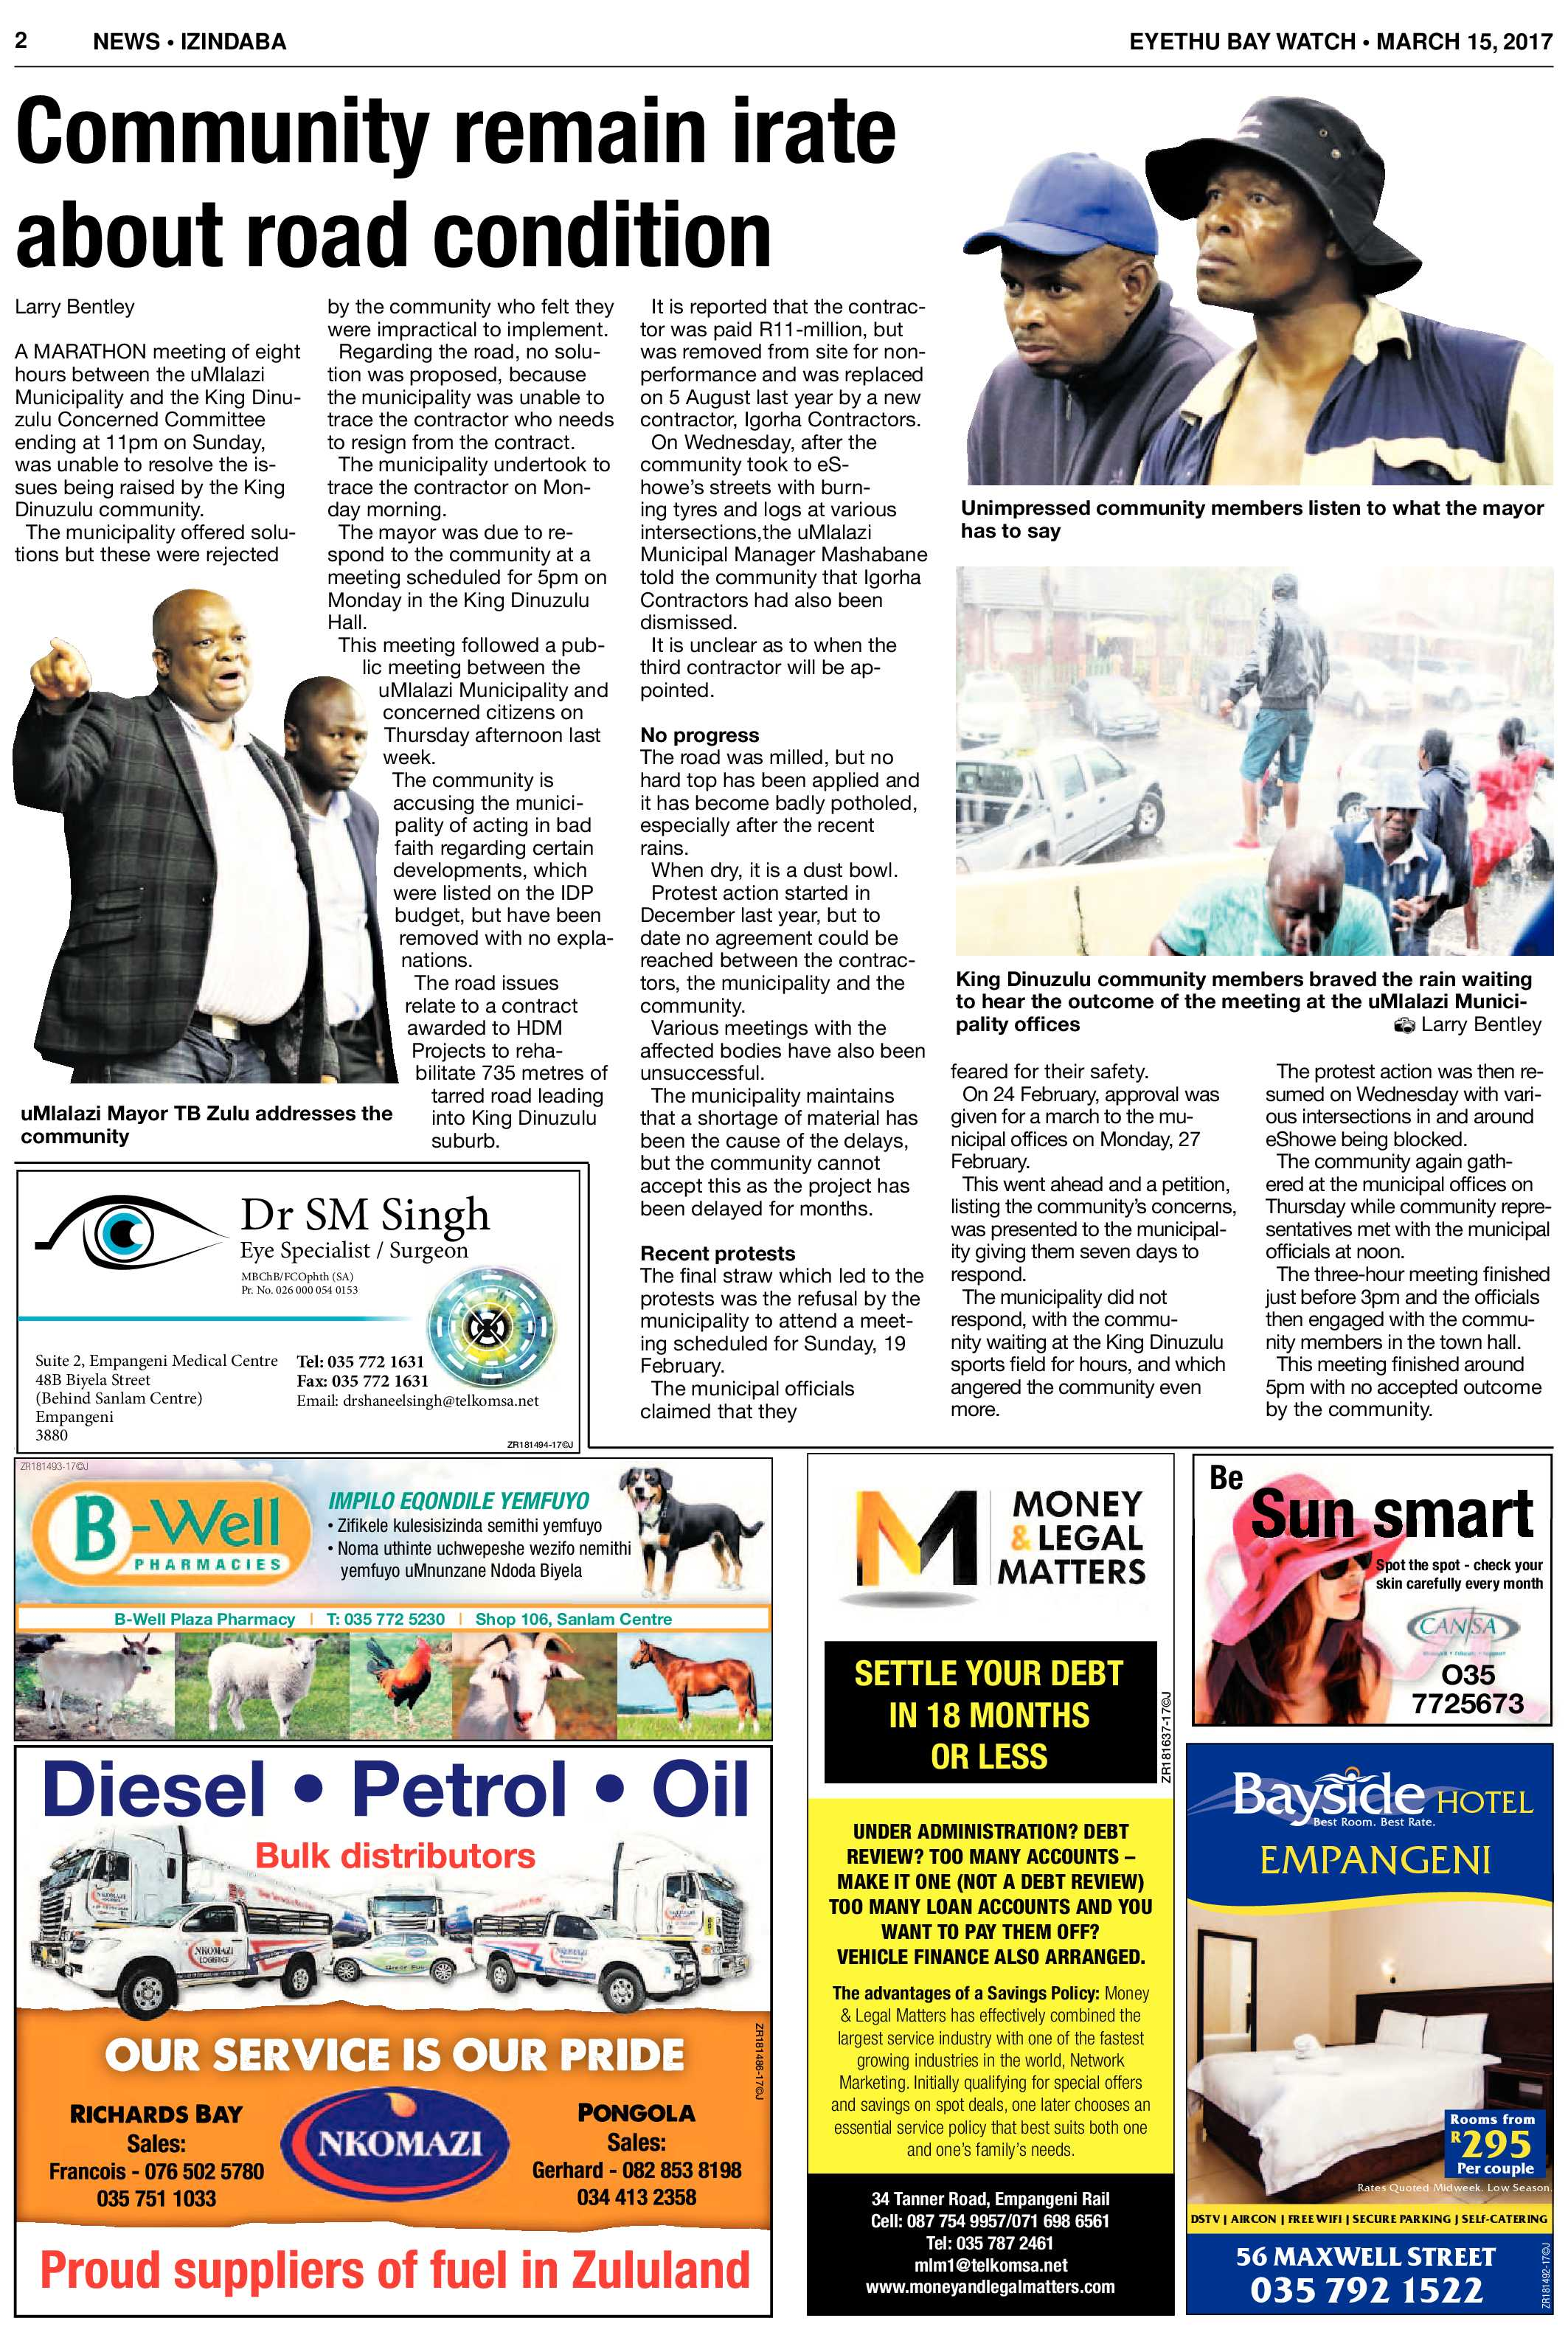 eyethu-baywatch-15-march-epapers-page-2